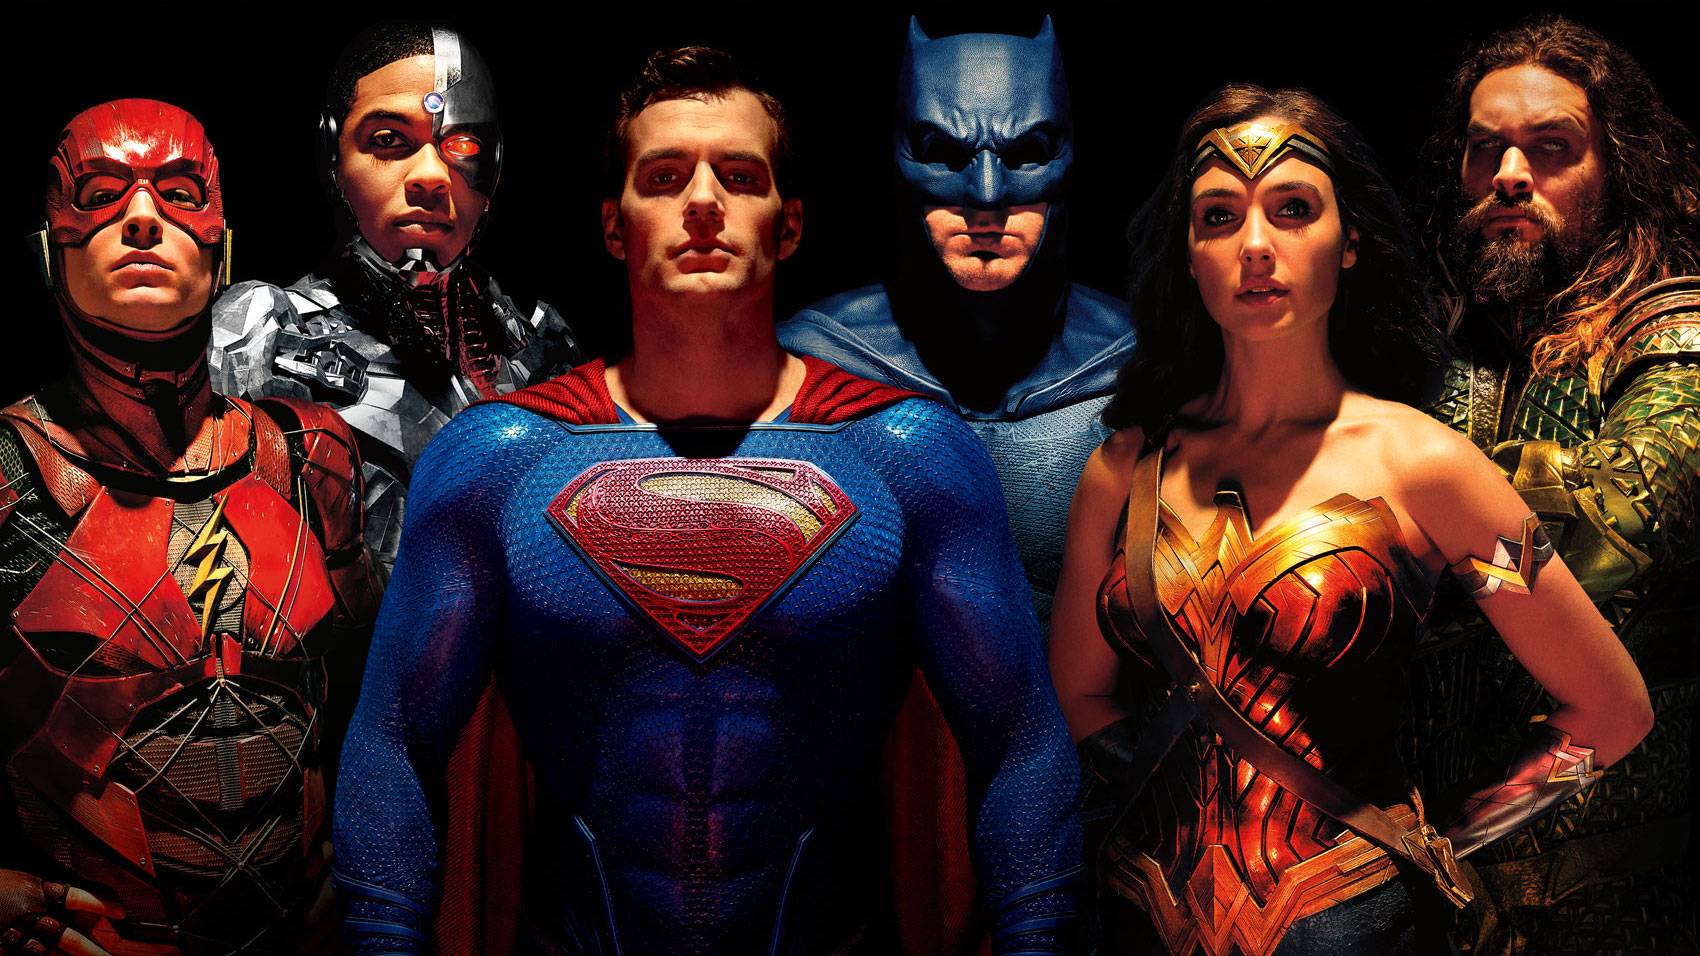 'Justice League' is officially, well and truly DC's lowest grossing movie